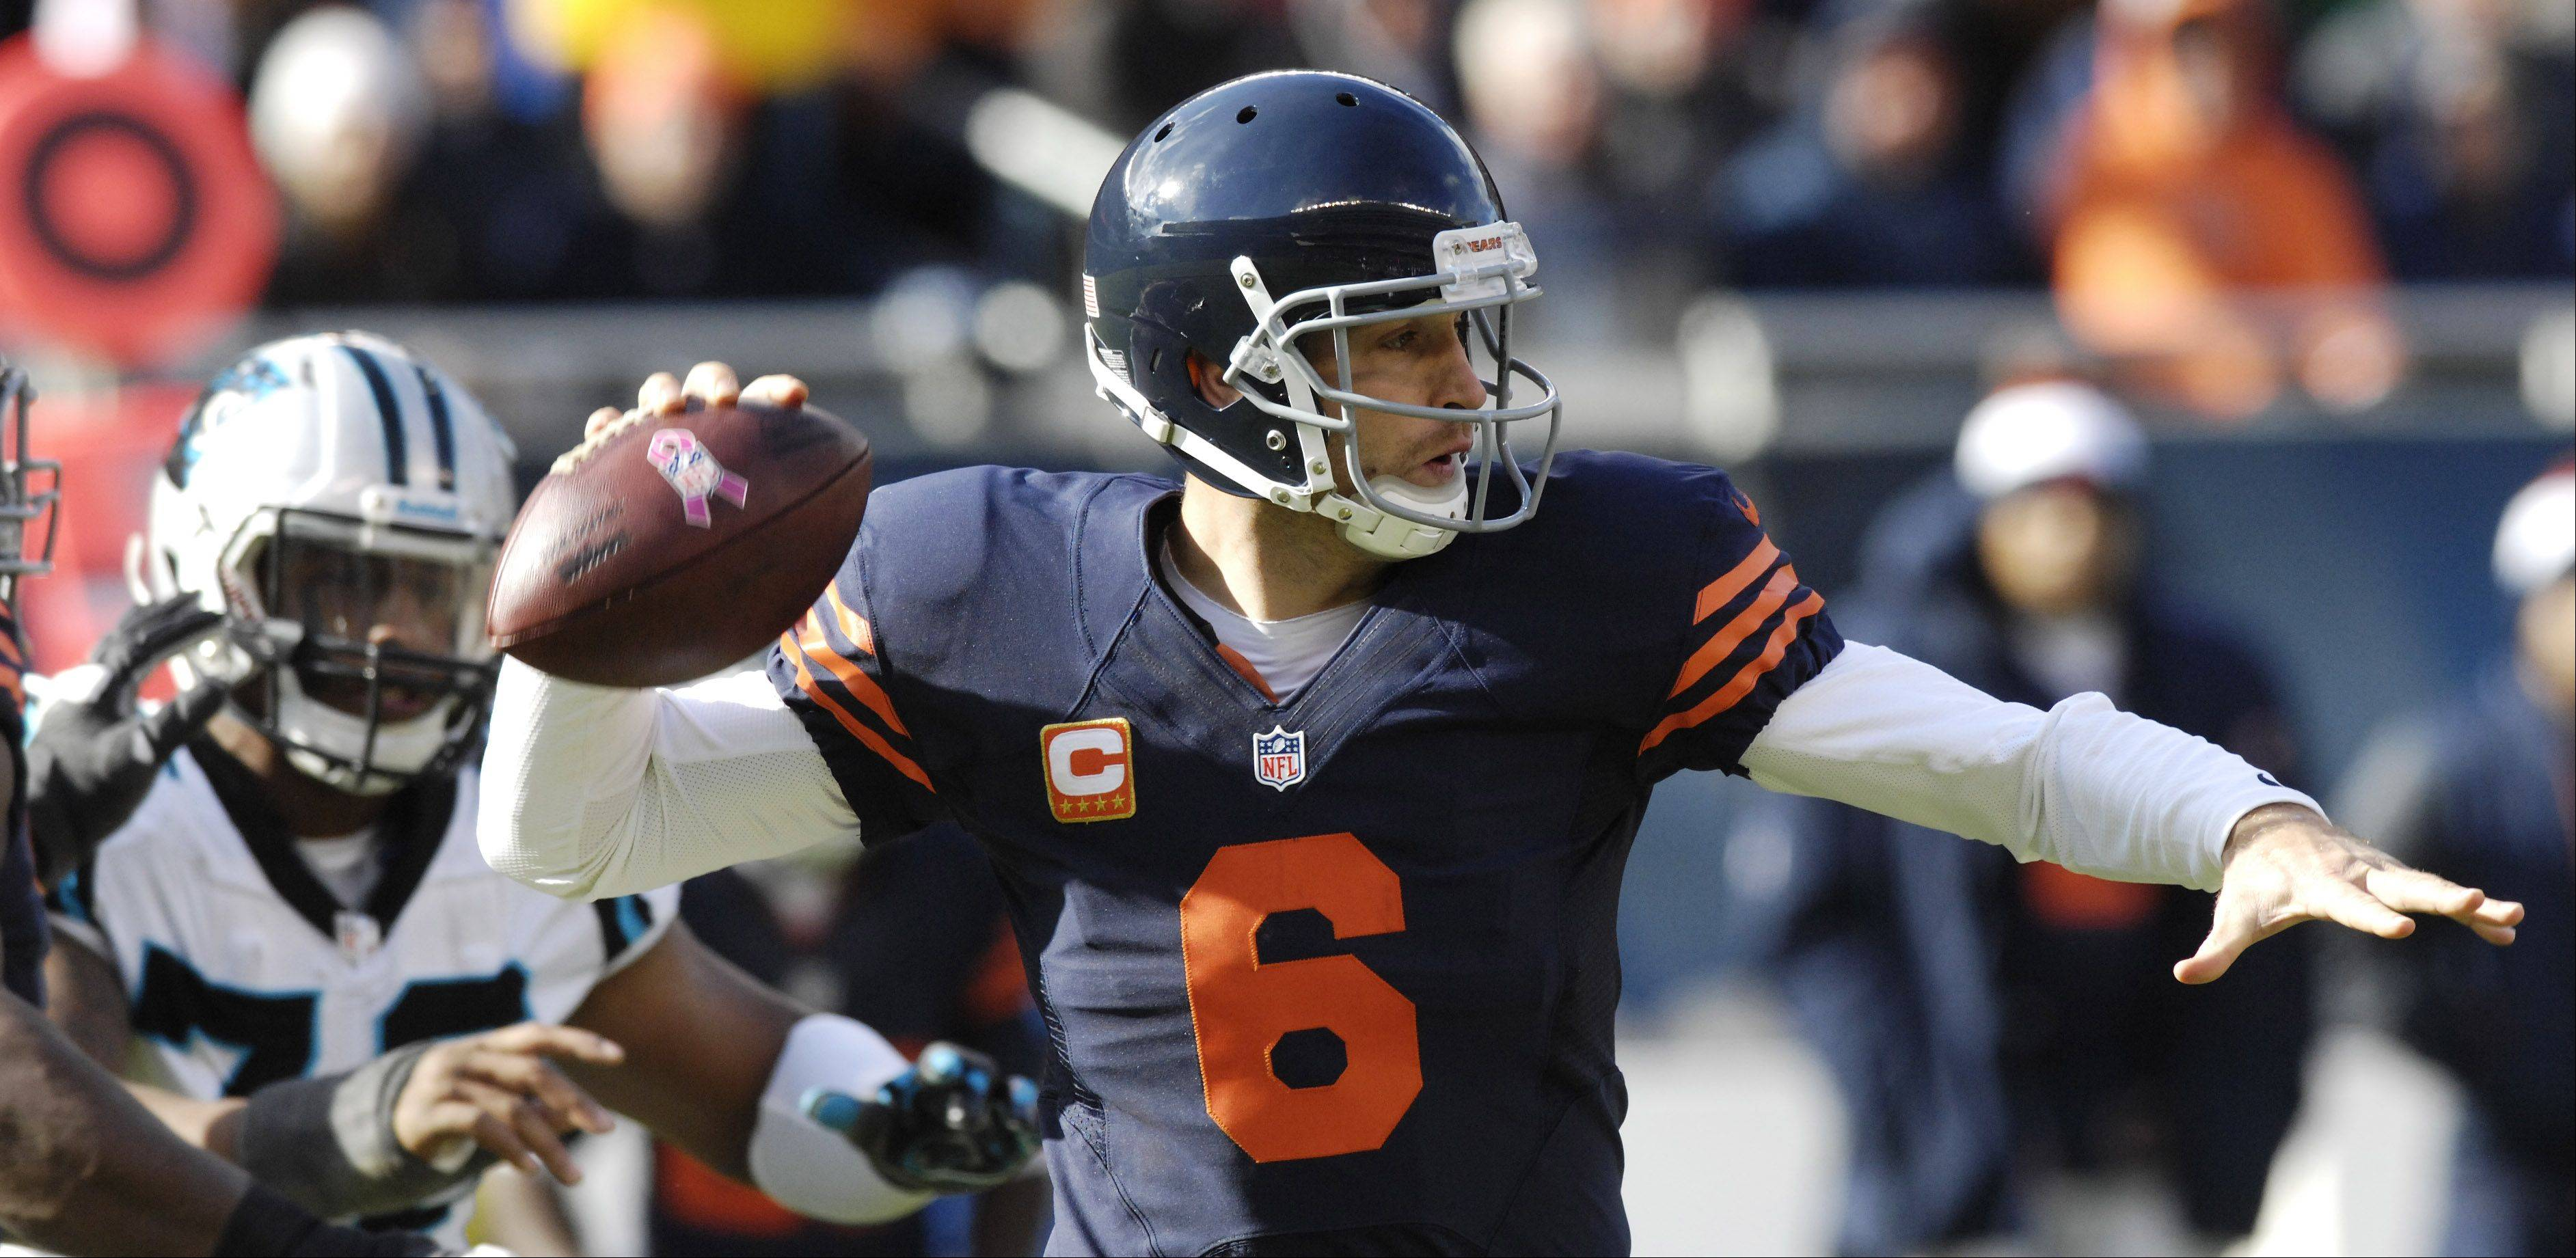 Bears quarterback Jay Cutler leads the NFL with a fourth-quarter passer rating of 132.0.